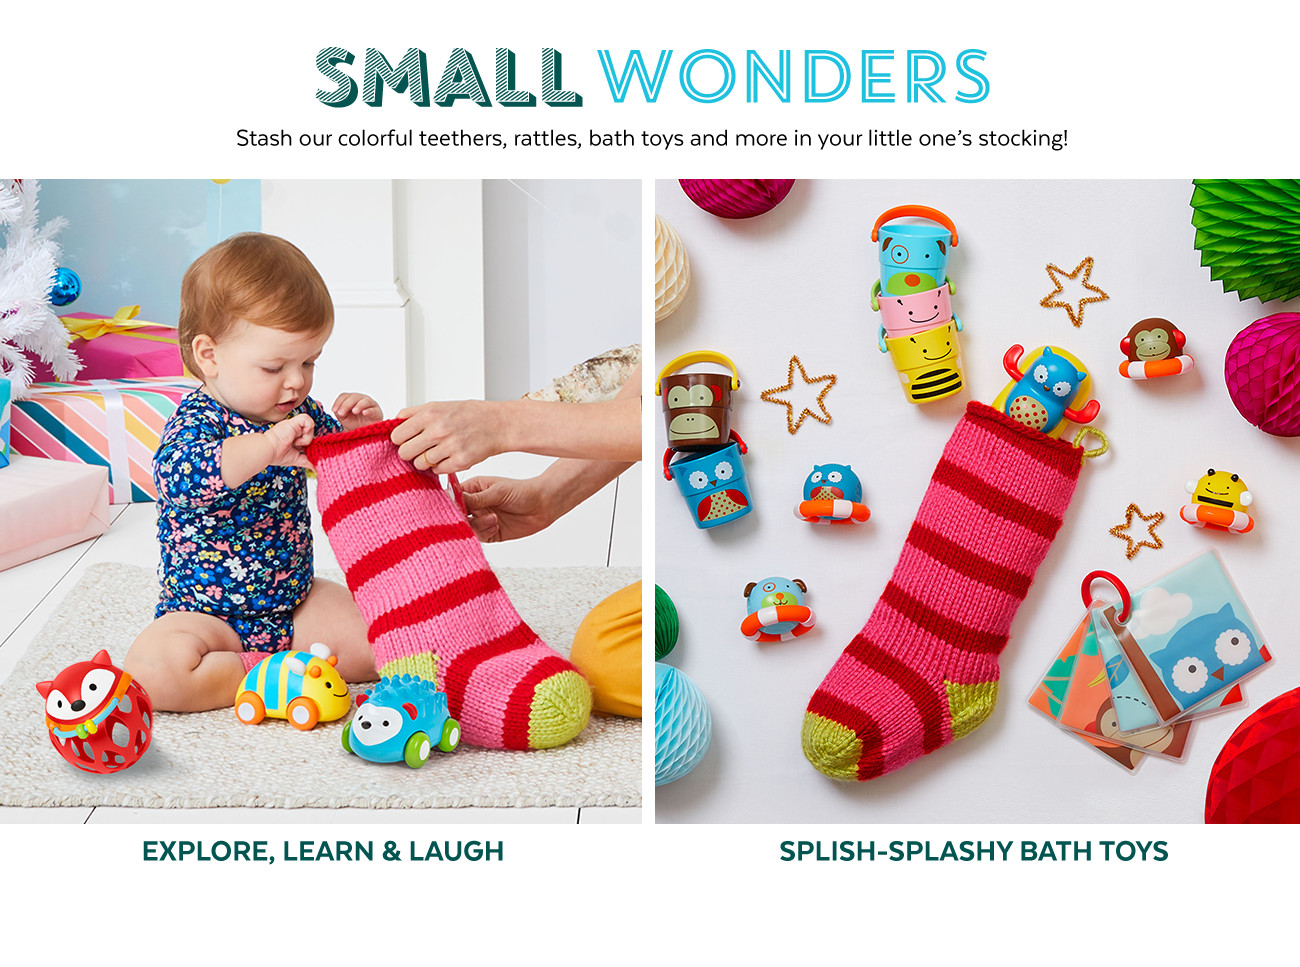 Small wonders | Stash our colorful teethers, rattles, bath toys and more in your little one's stocking!